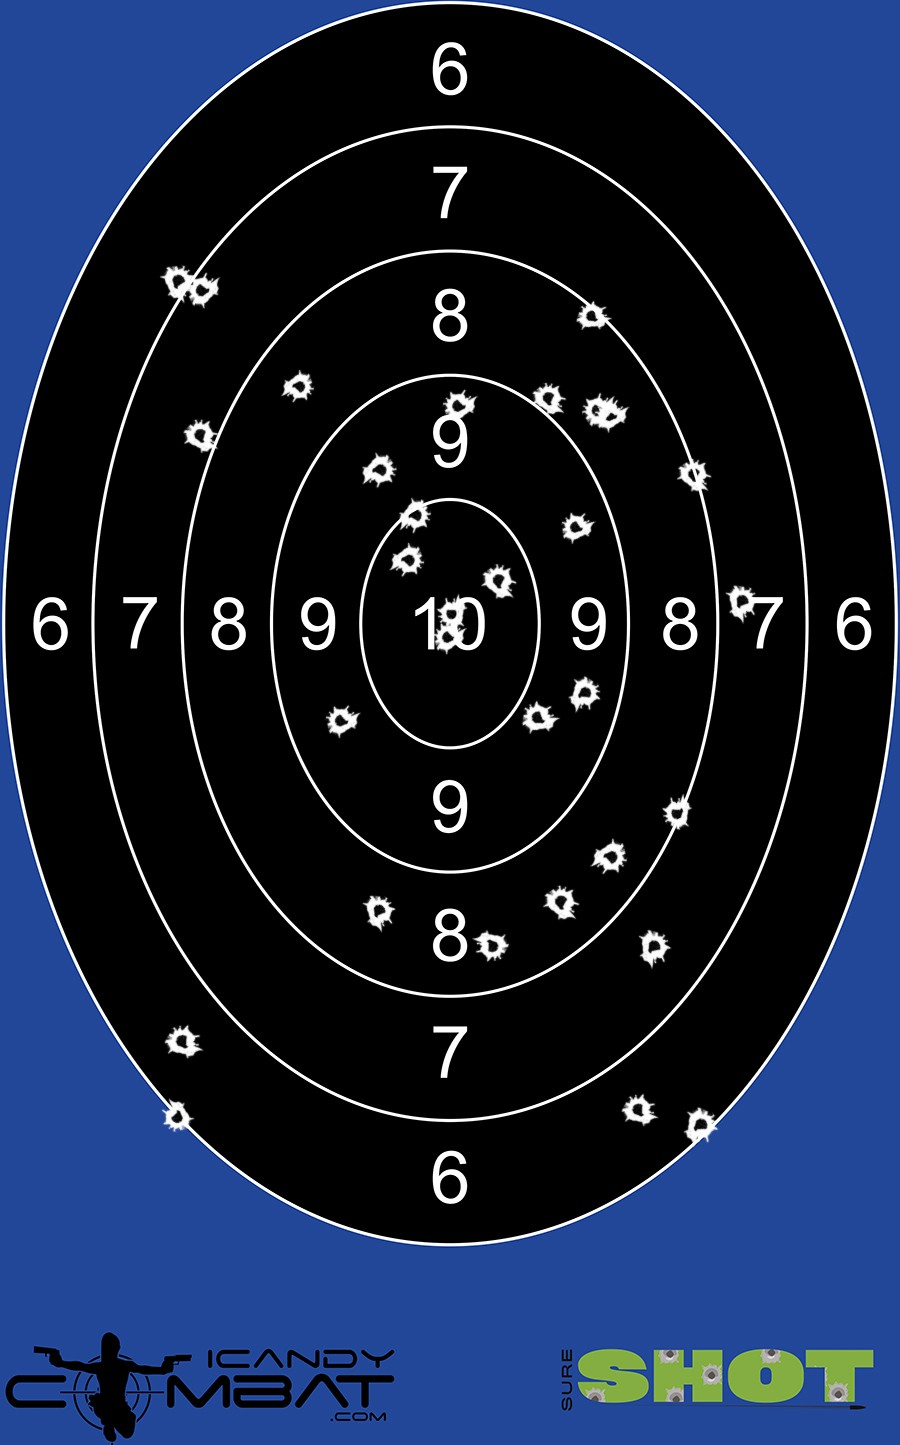 100 Pack Black Oval Bulls-Eye Splatter Shooting Target by iCandy Products Inc